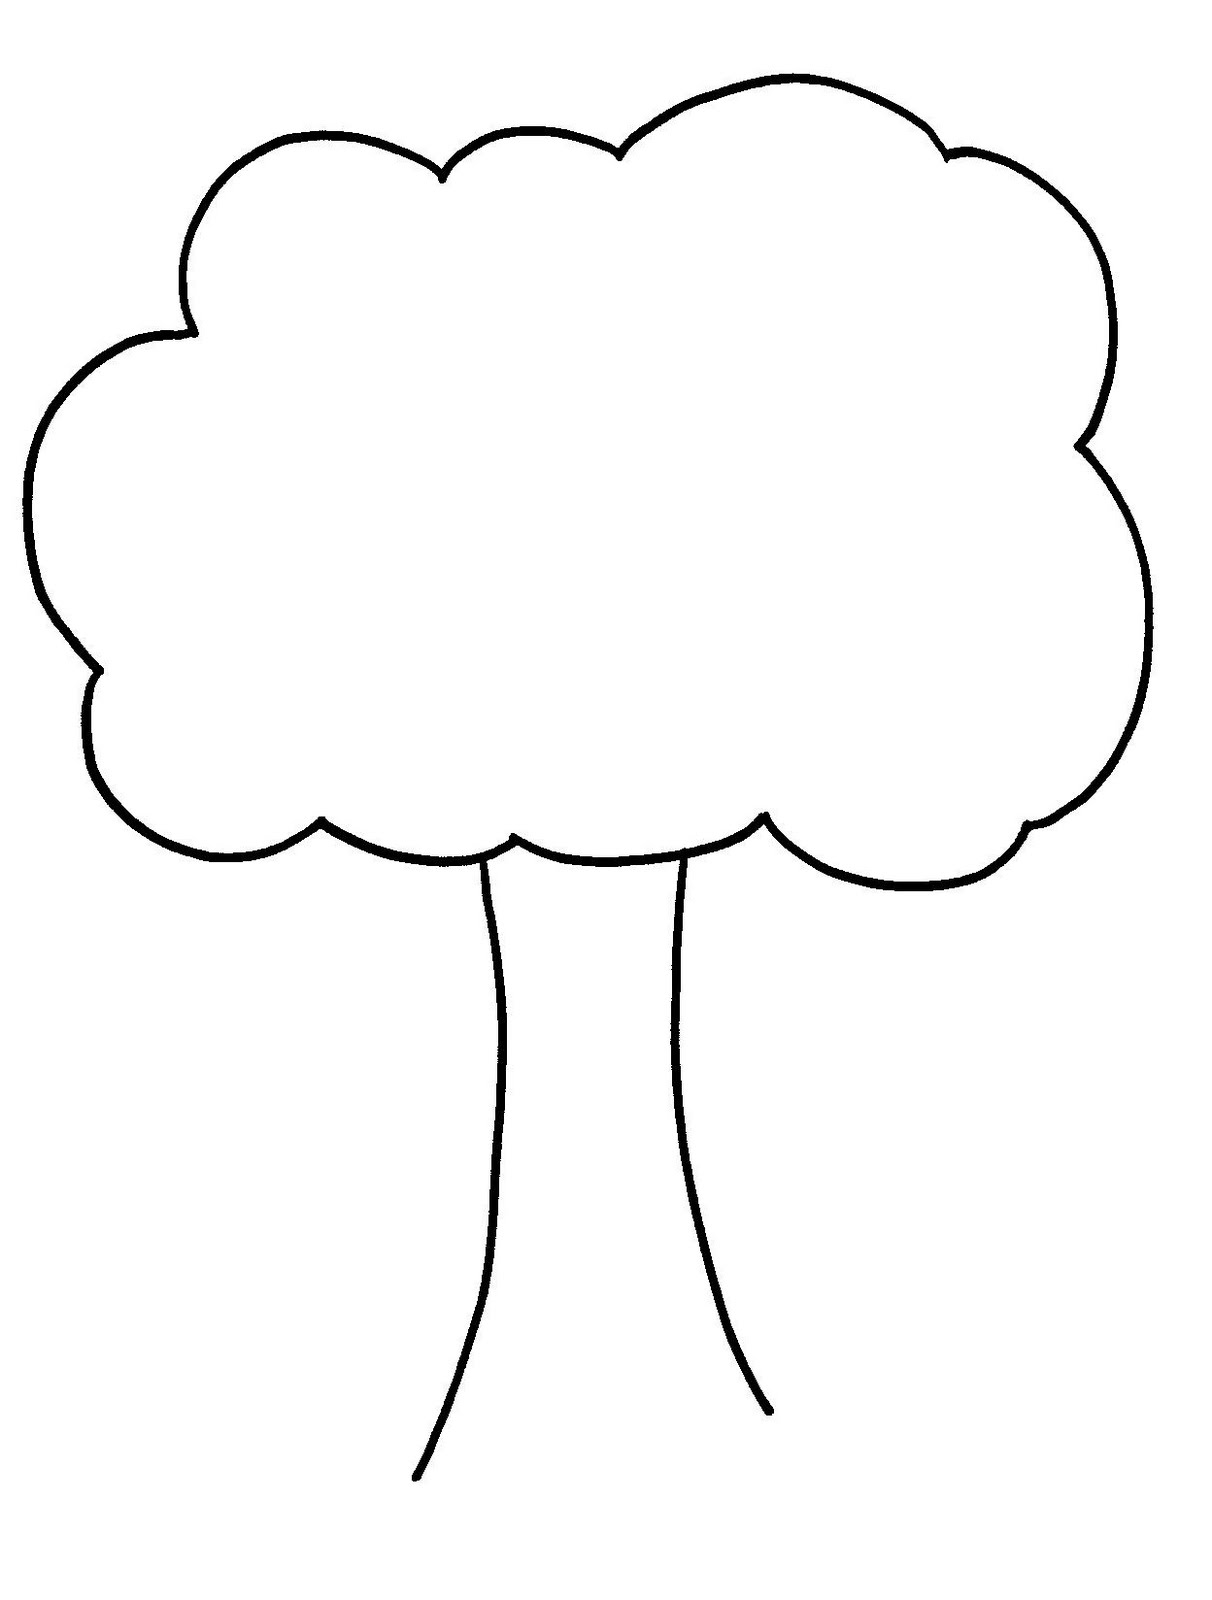 Simple Tree Clipart Black And White : simple, clipart, black, white, Simple, Clipart, Black, White,, Download, Library